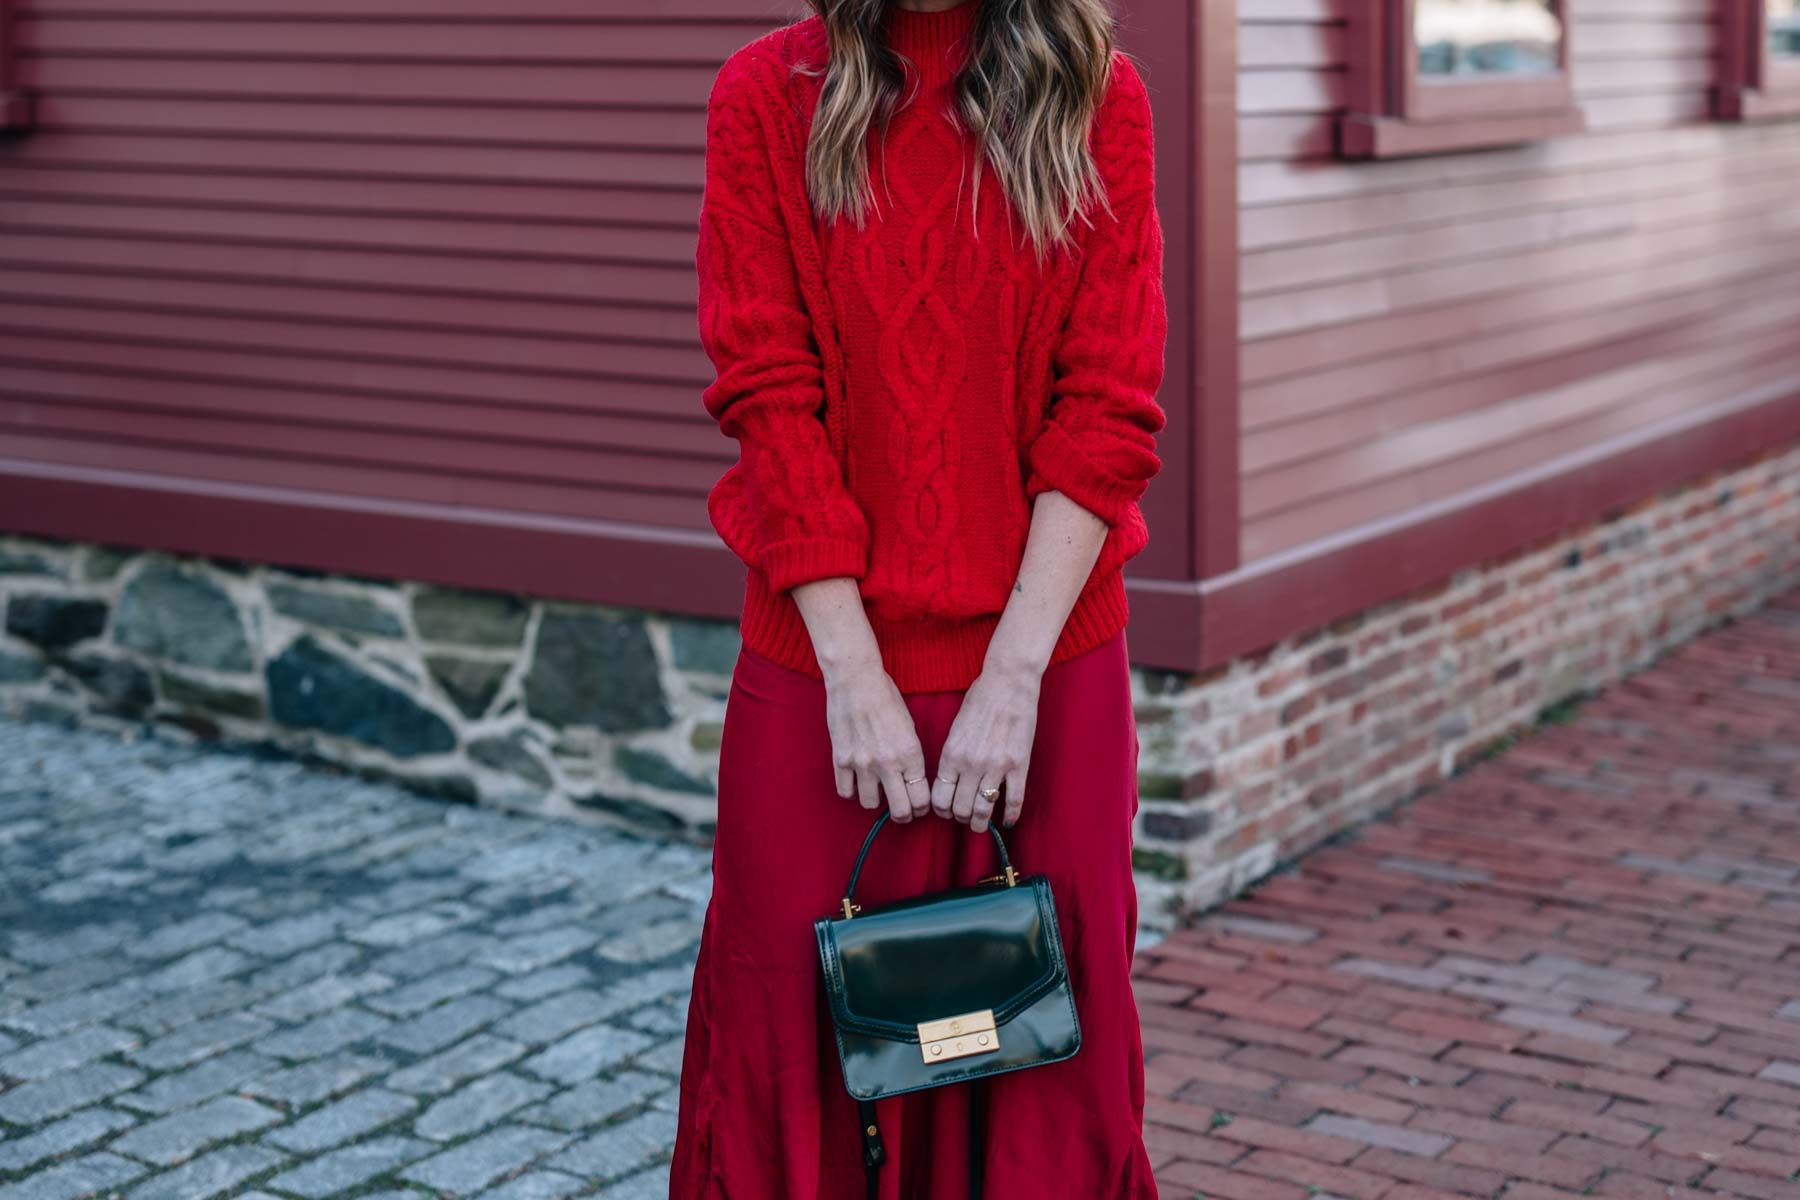 44be7e8cd36151 Jess Ann Kirby shares how to wear red on red this holiday season with  sparkle ankle boots and the tory burch mini Juliette bag